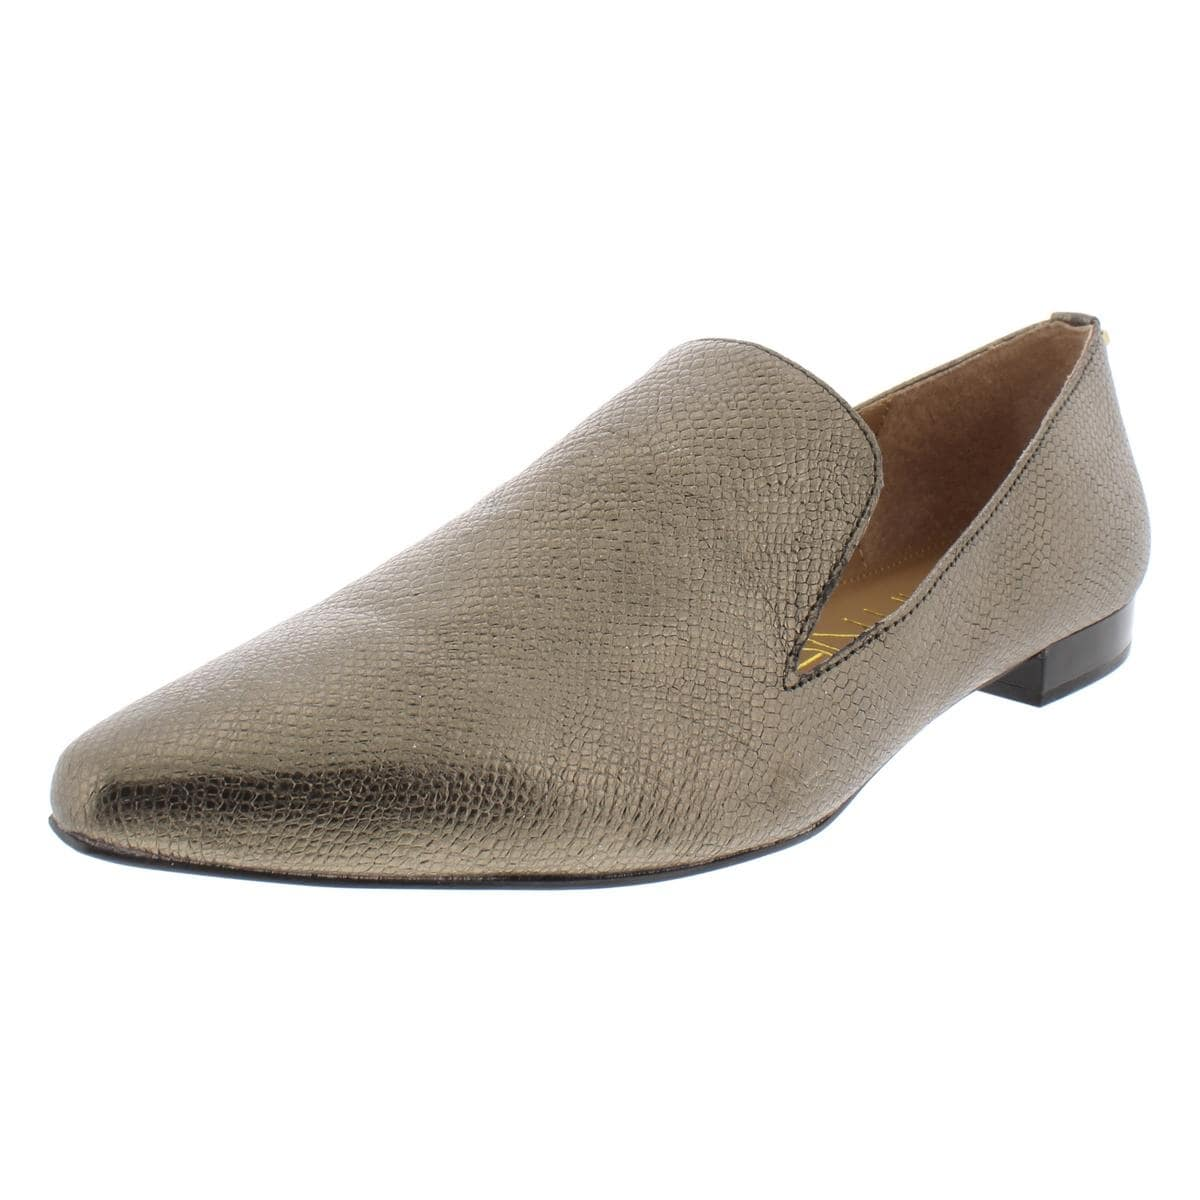 14757d9100b Shop Calvin Klein Womens Elin Smoking Loafers - Free Shipping On ...